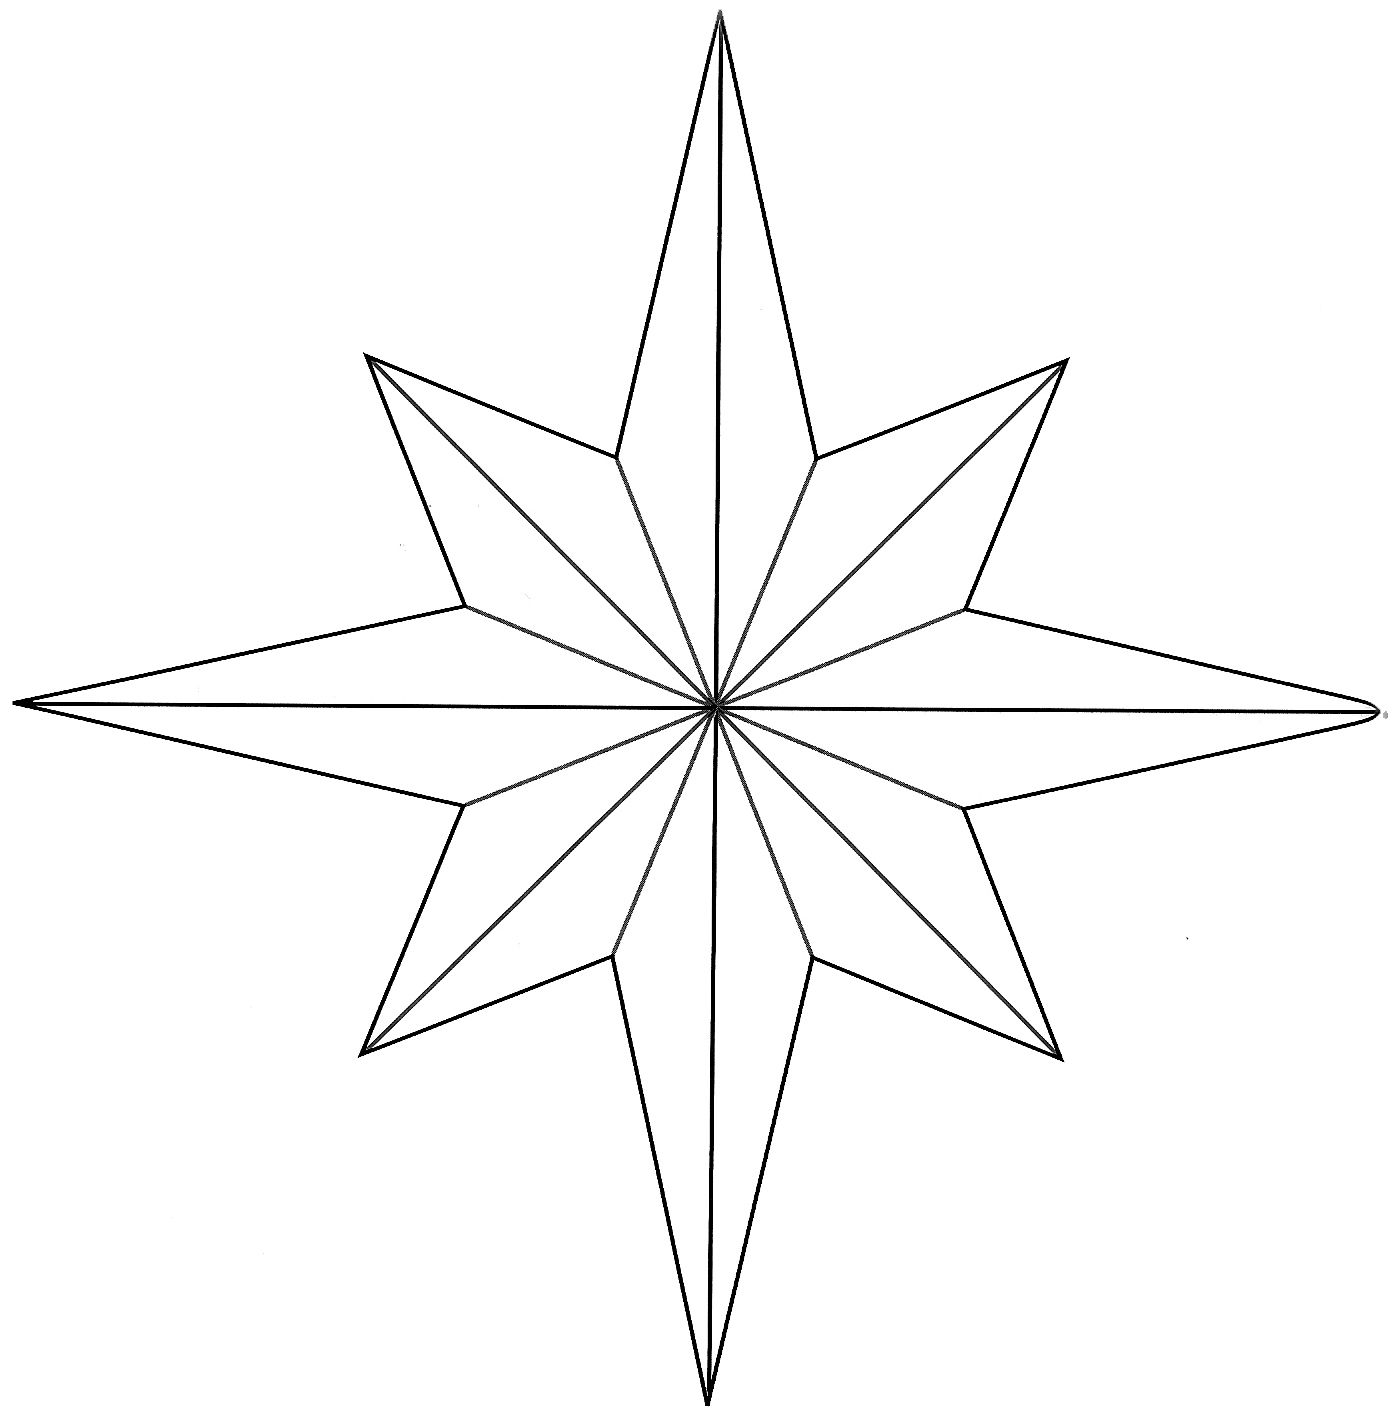 I wanted to share this 8 point star template that I came